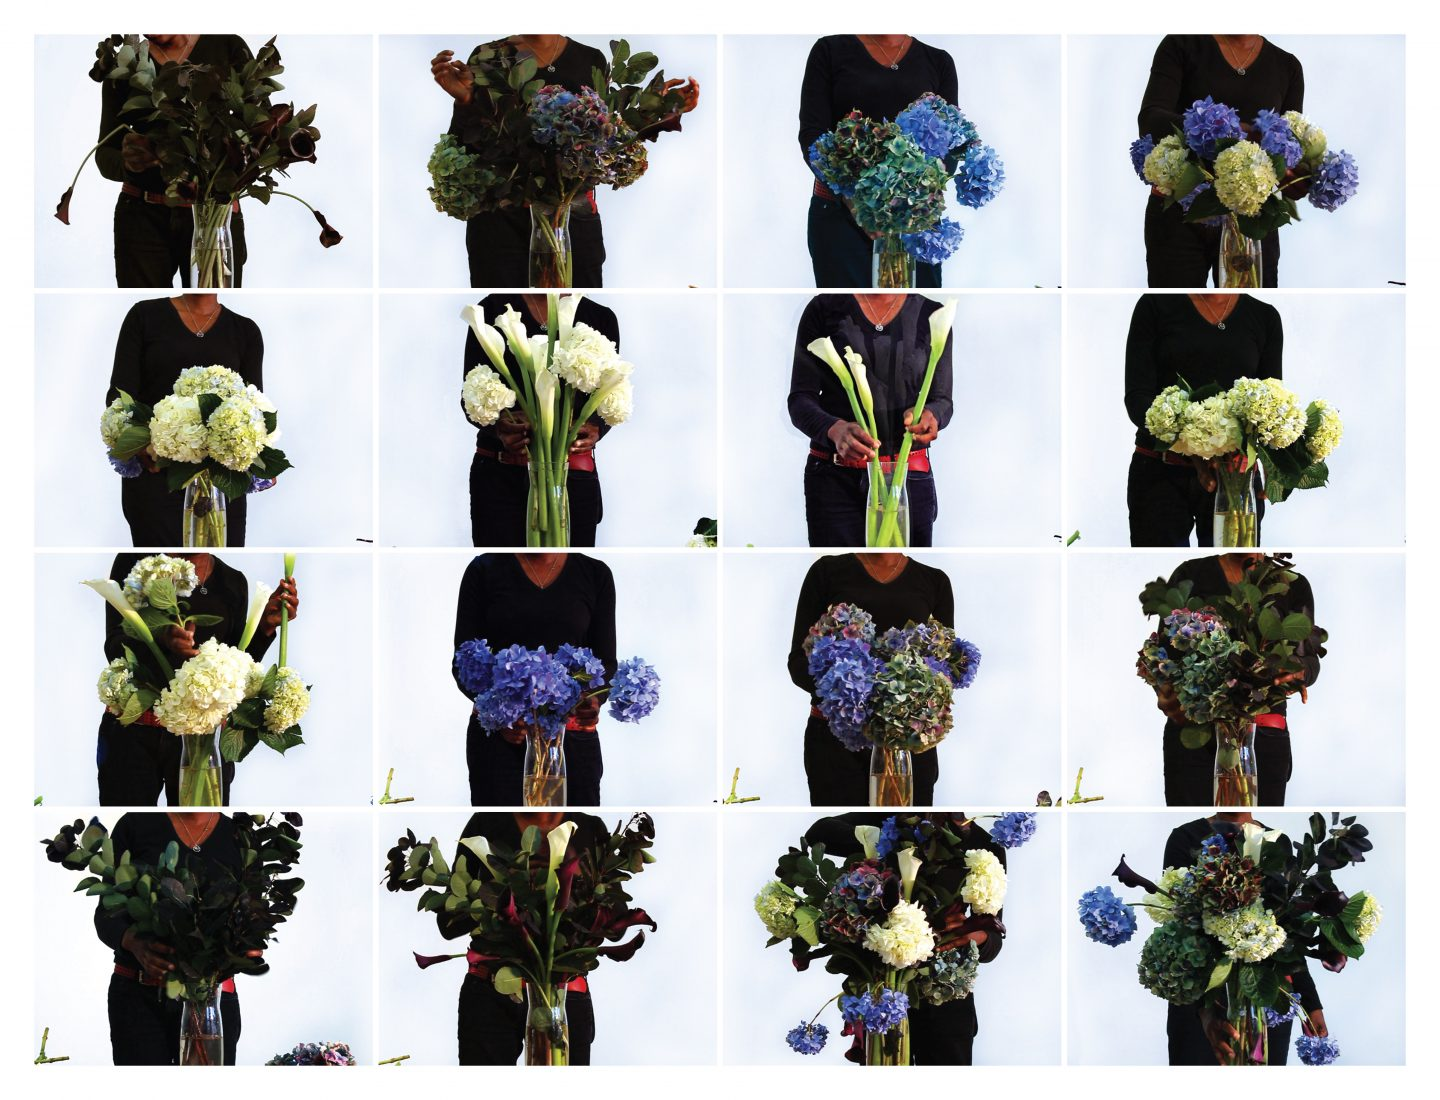 Cauleen Smith: Photo grid from <em>Black And Blue Over You (After Bas Jan Ader For Ishan)</em> product image